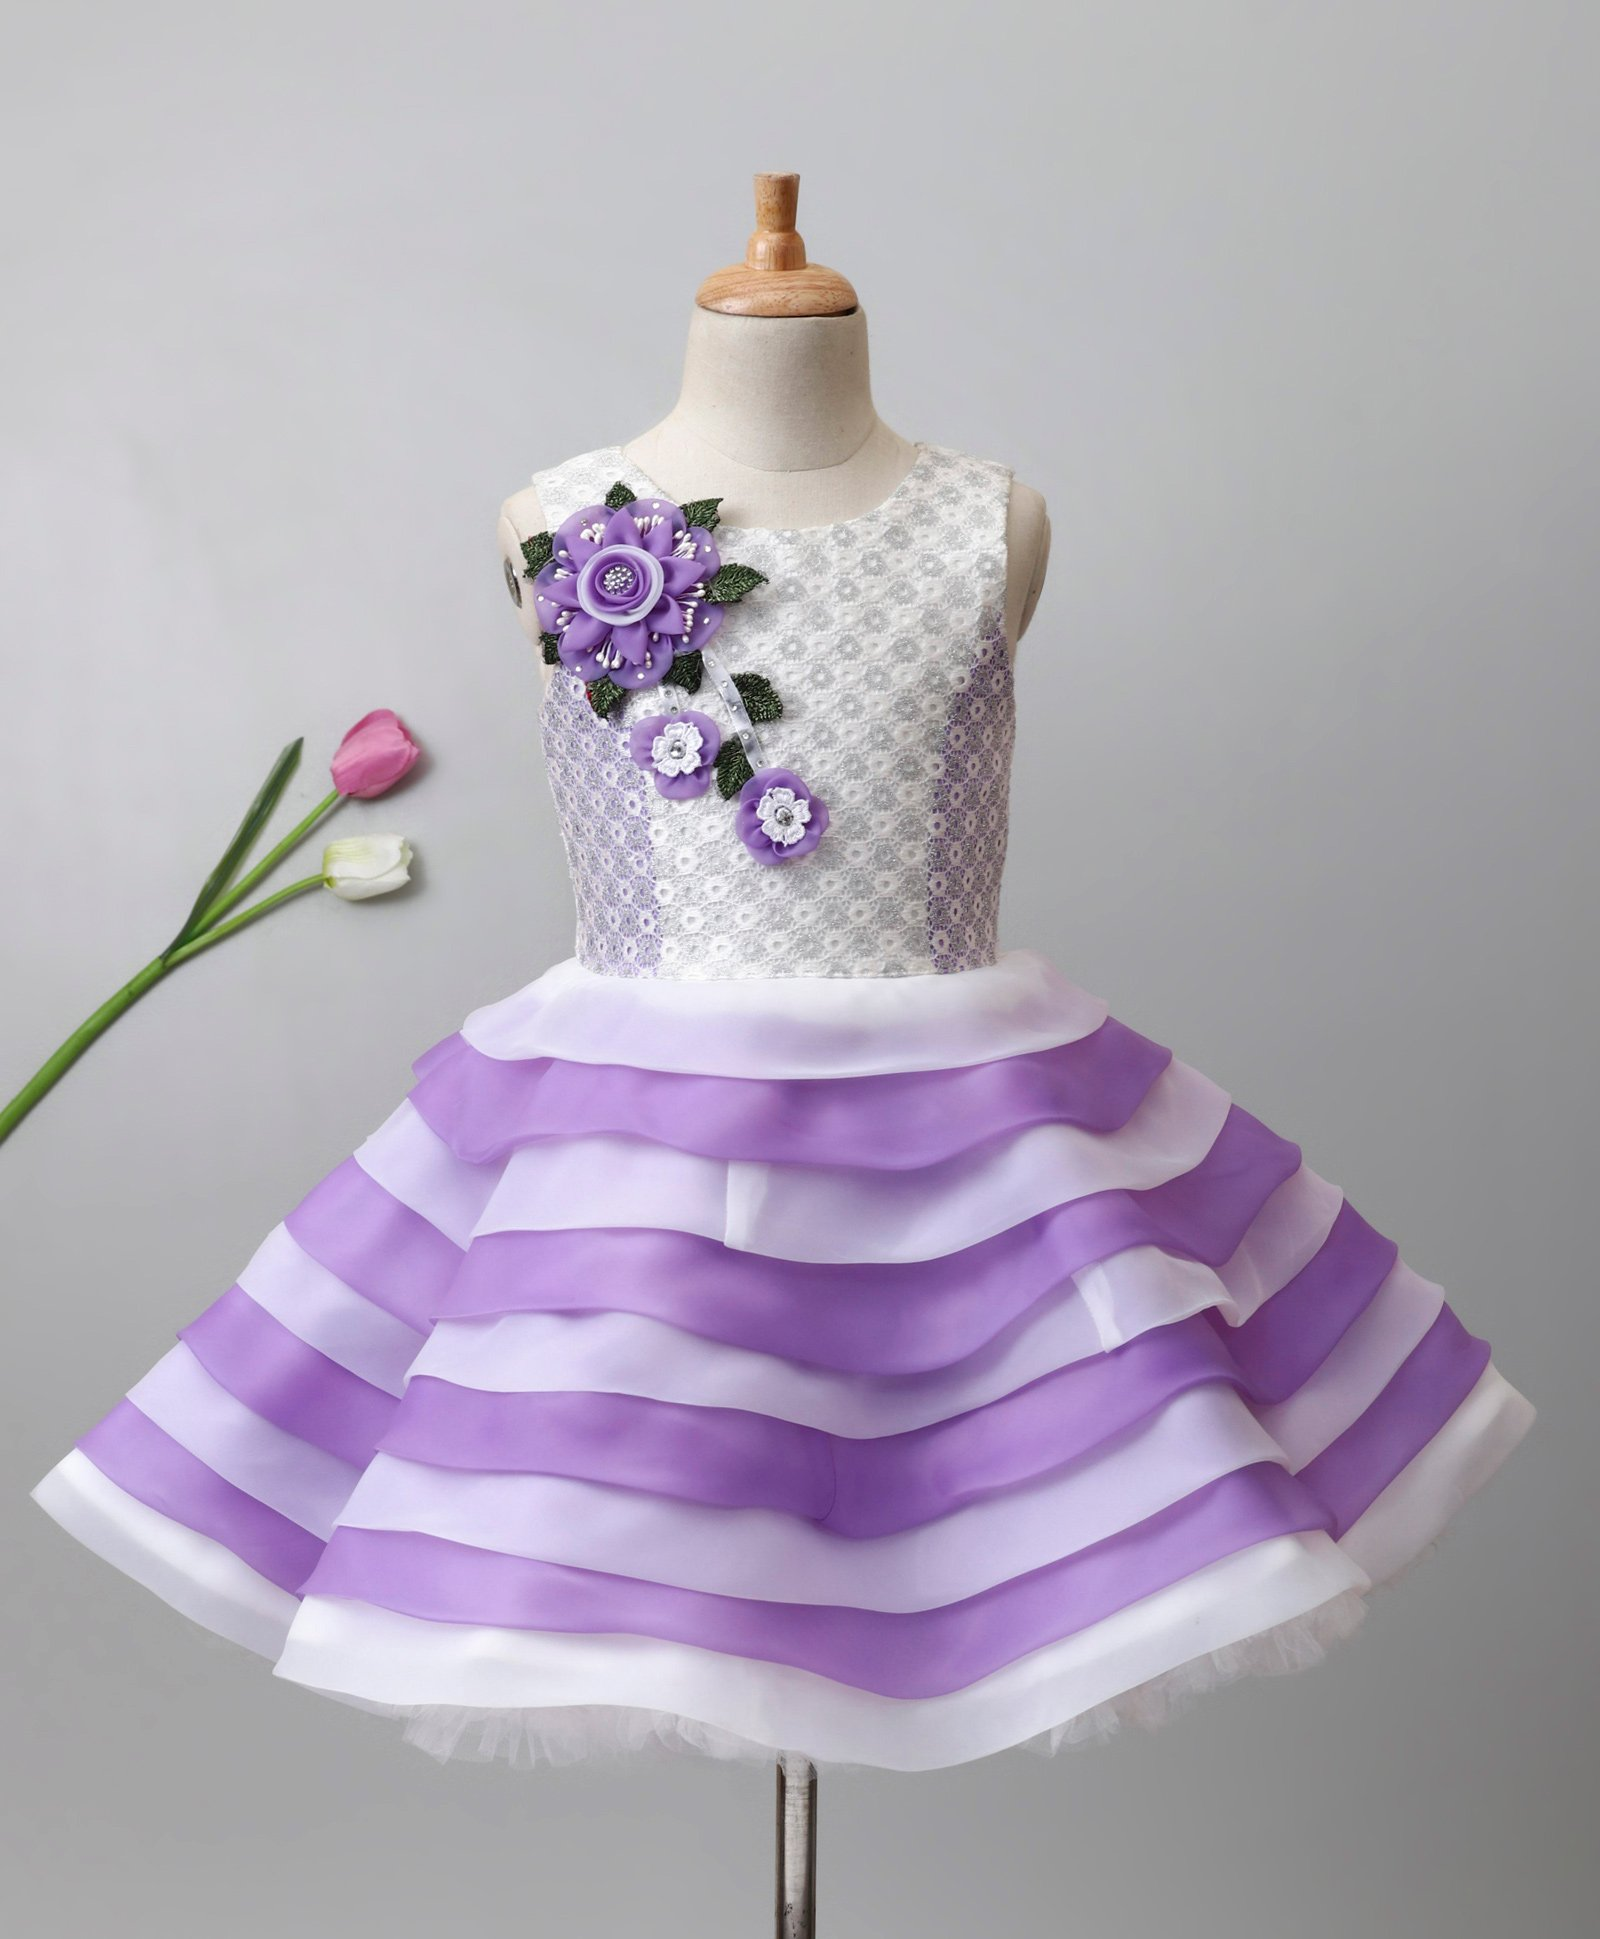 a2be9aca702 Enfance Sleeveless Flower Applique Dual Toned Layered Dress - Purple   White.  3 to 4 ...